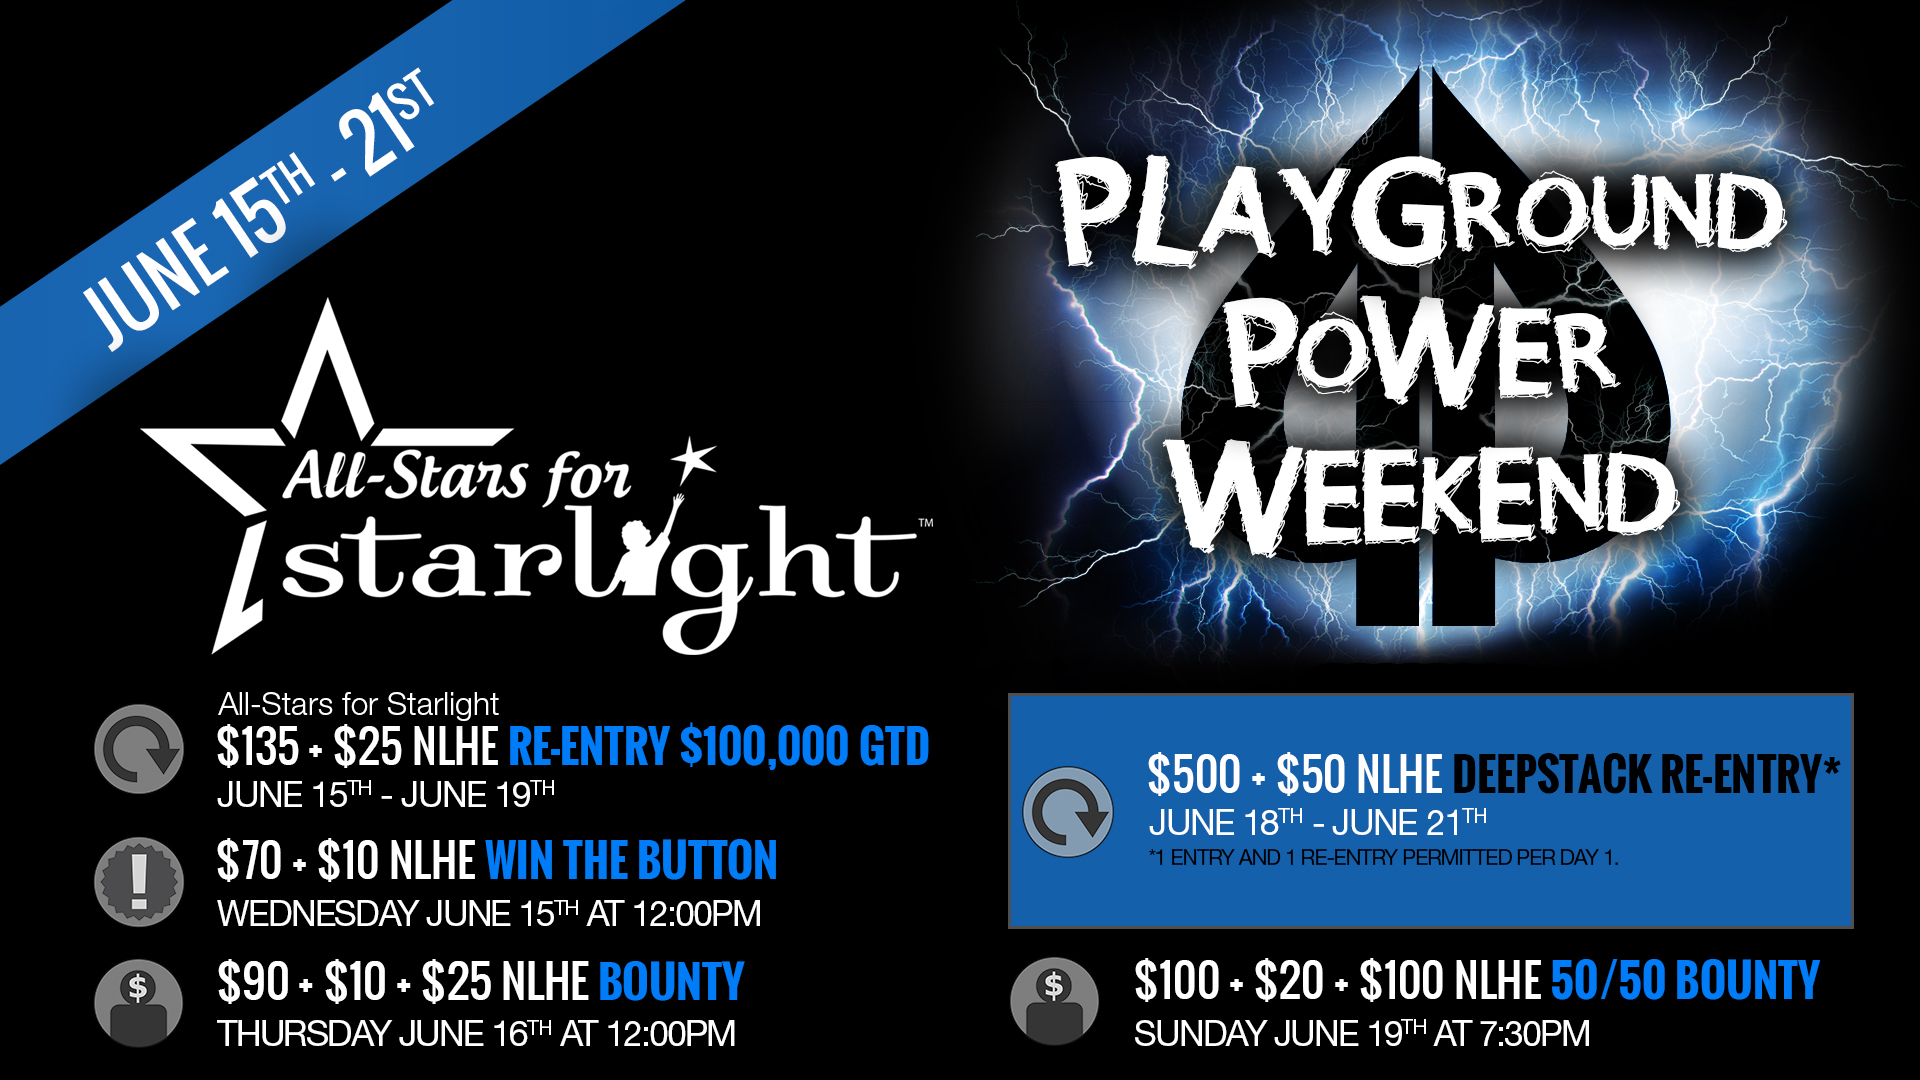 June's Power Weekend is just around the corner!